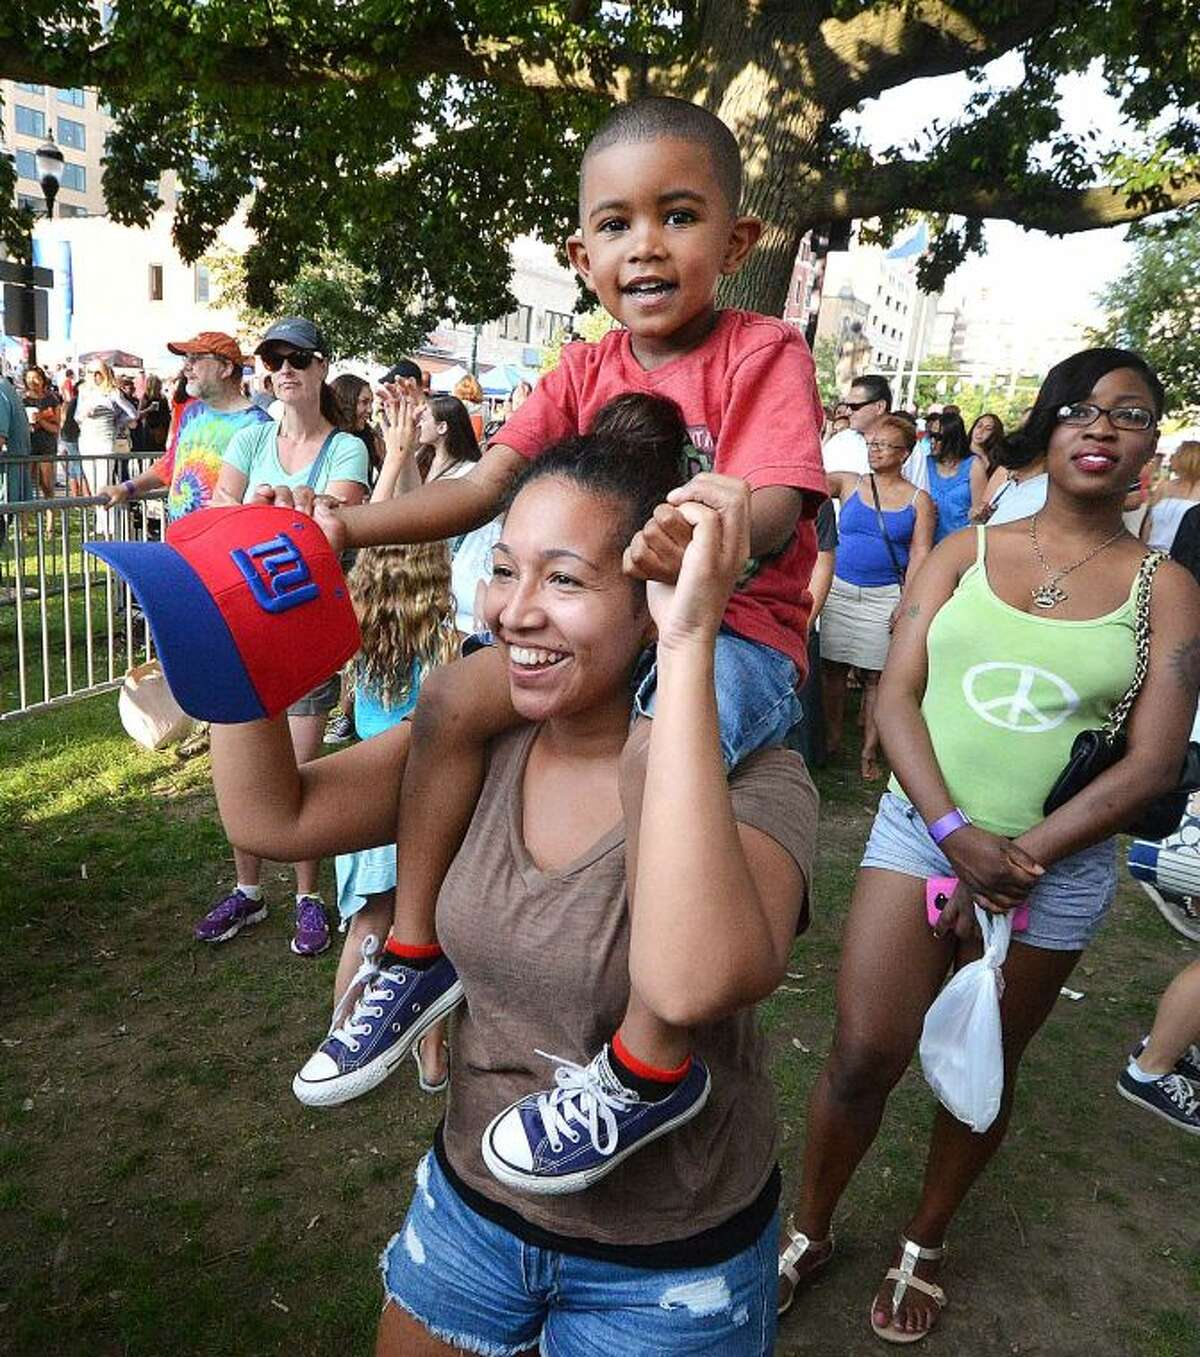 Hour Photo/Alex von Kleydorff Deanna Gomes dances with her 4 yr old nephew Steven Flores on her shoulders during Alive@Five in Stamford's Columbus Park on Thursday July 10th